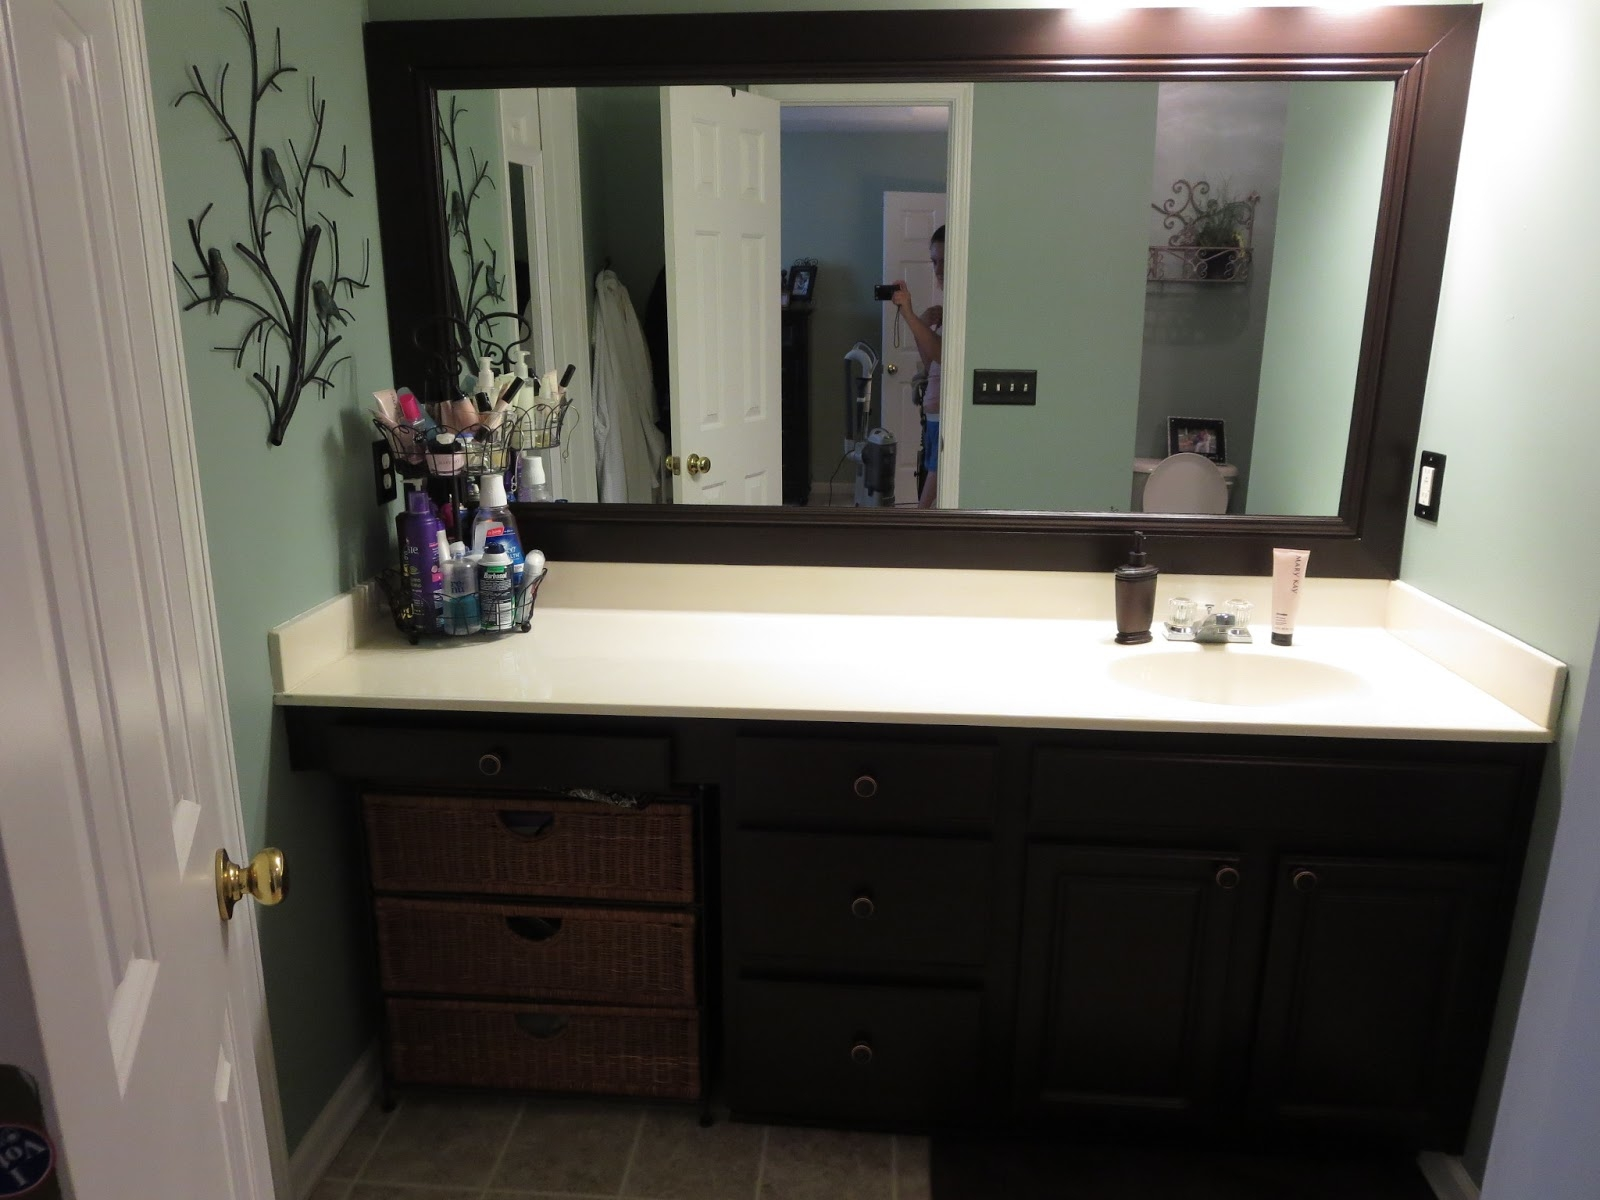 Dark Wood Wall Mirror Dark Wood Wall Mirror oak framed bathroom mirrors 118 stunning decor with small vanity 1600 X 1200